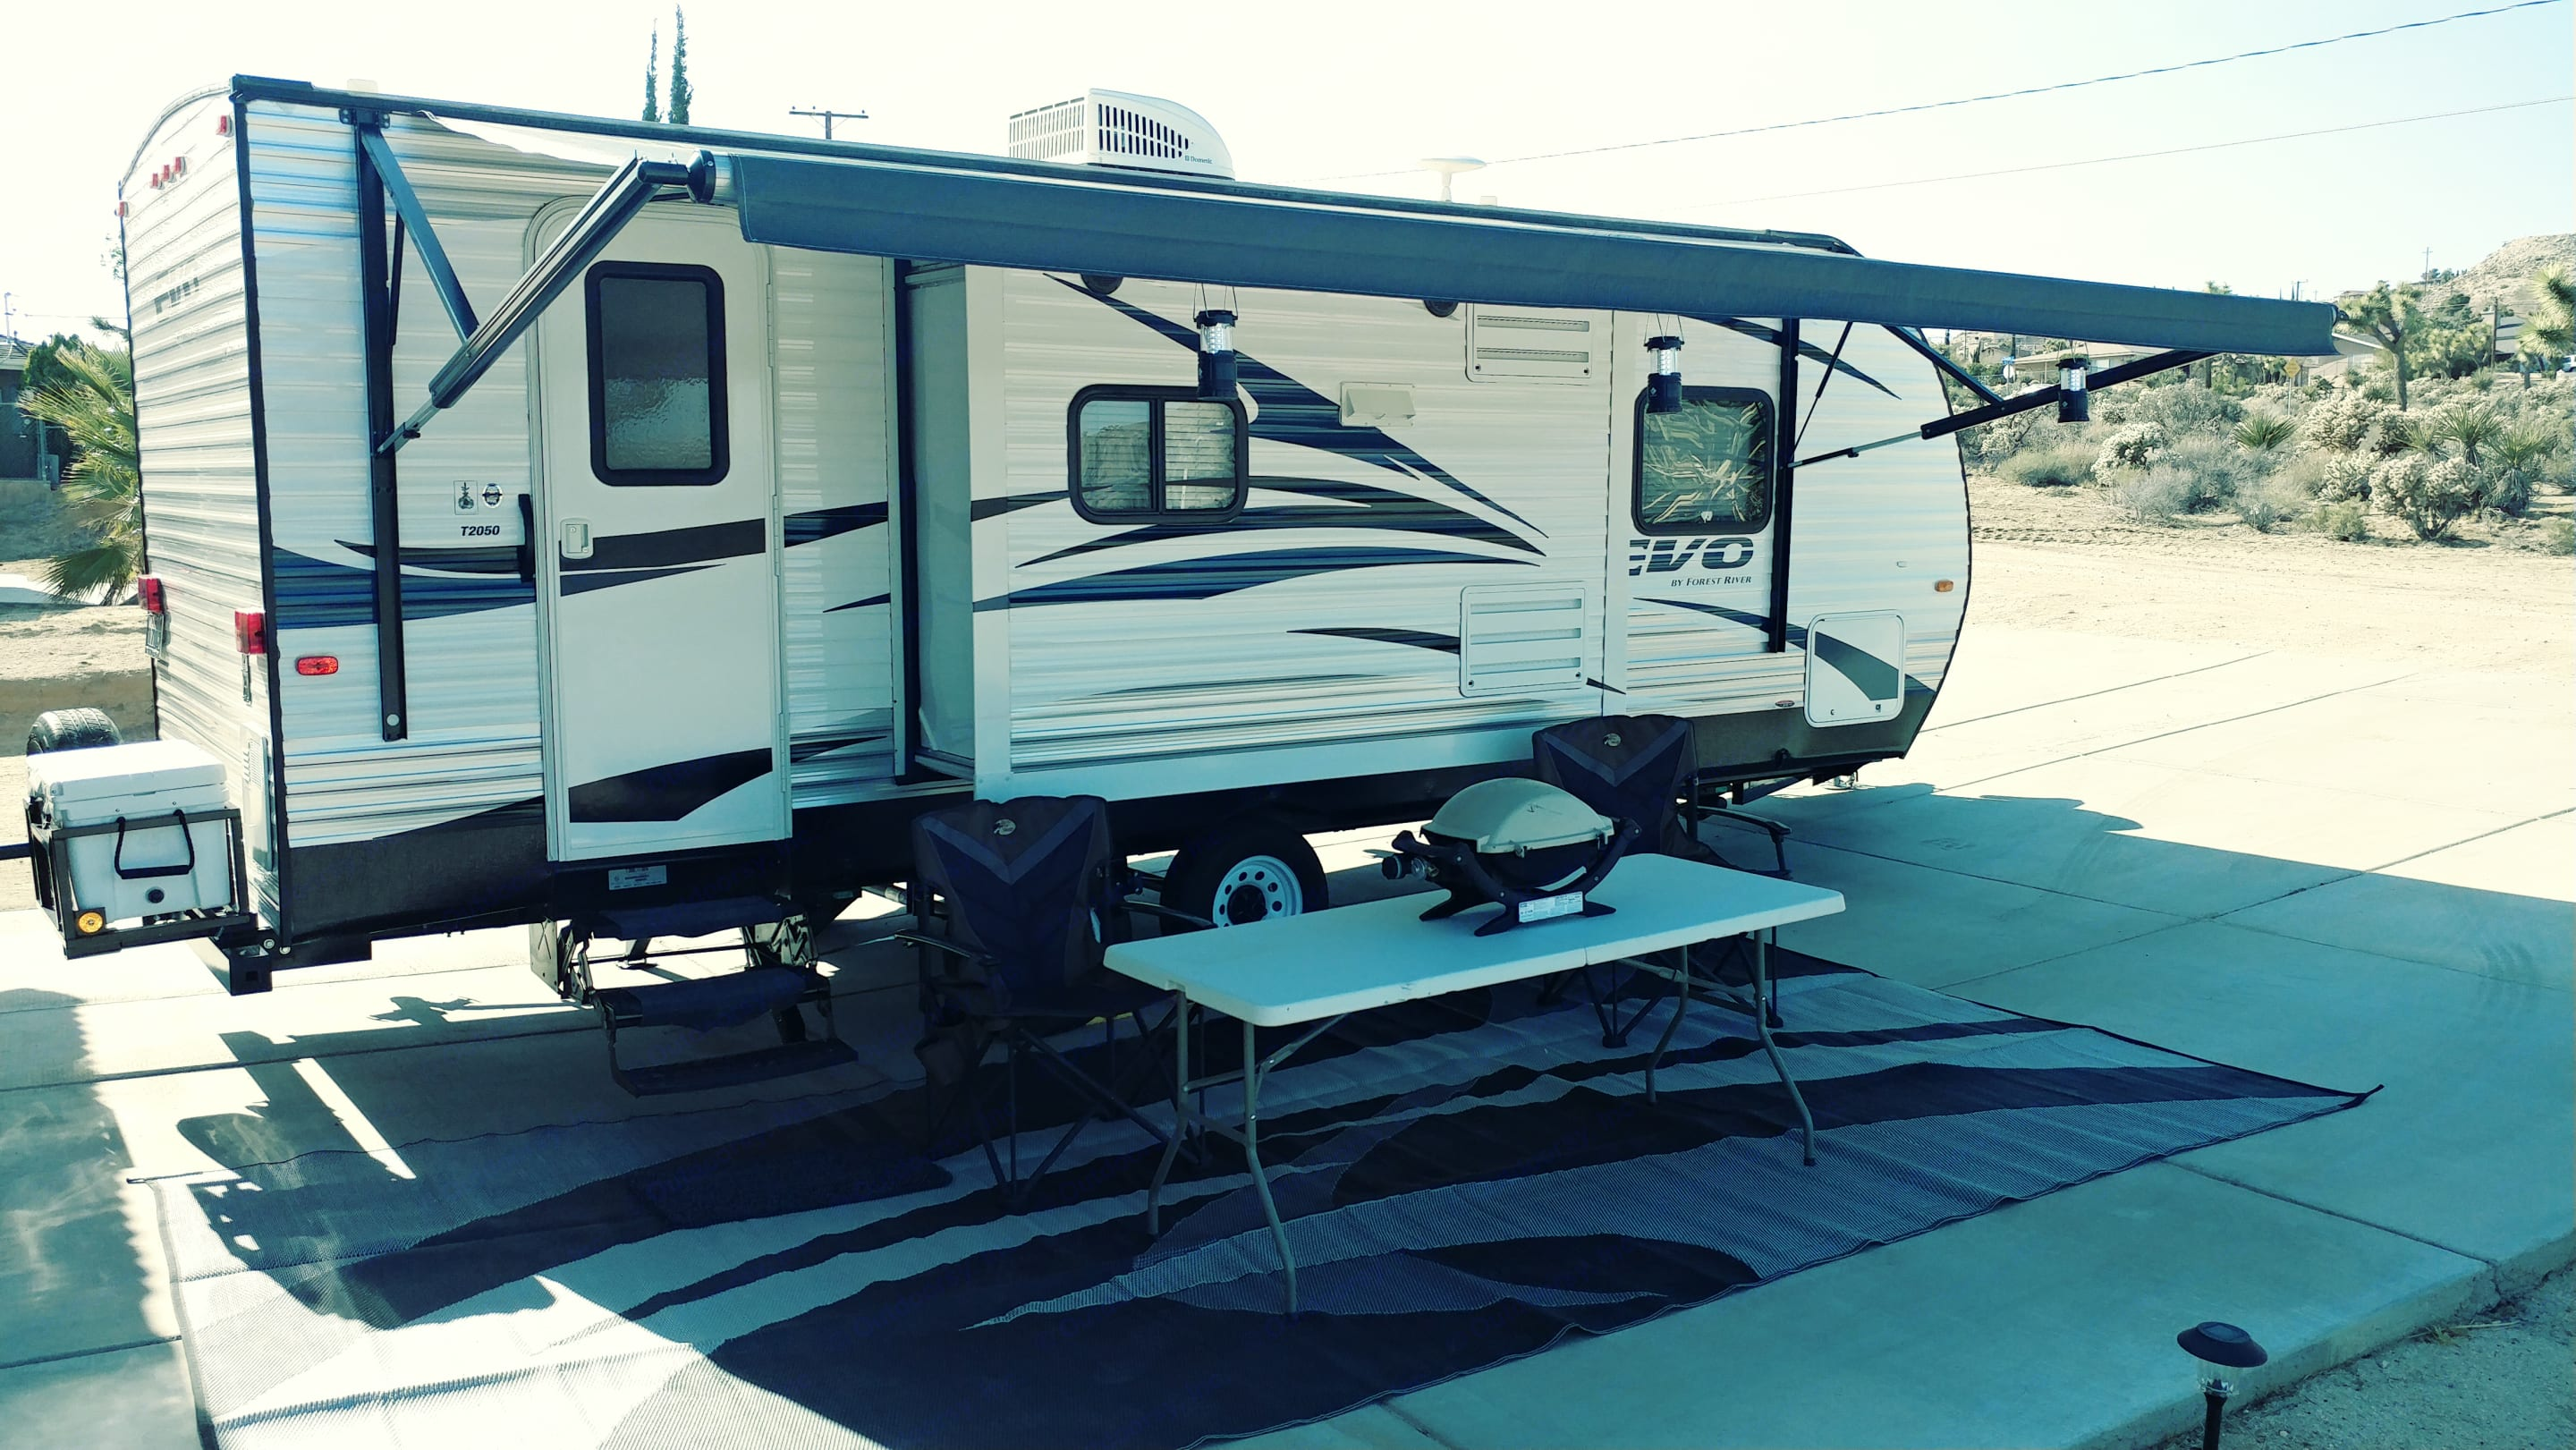 Passenger side electric awning, pop out, and stabilizer jacks. Forest River Evo 2016